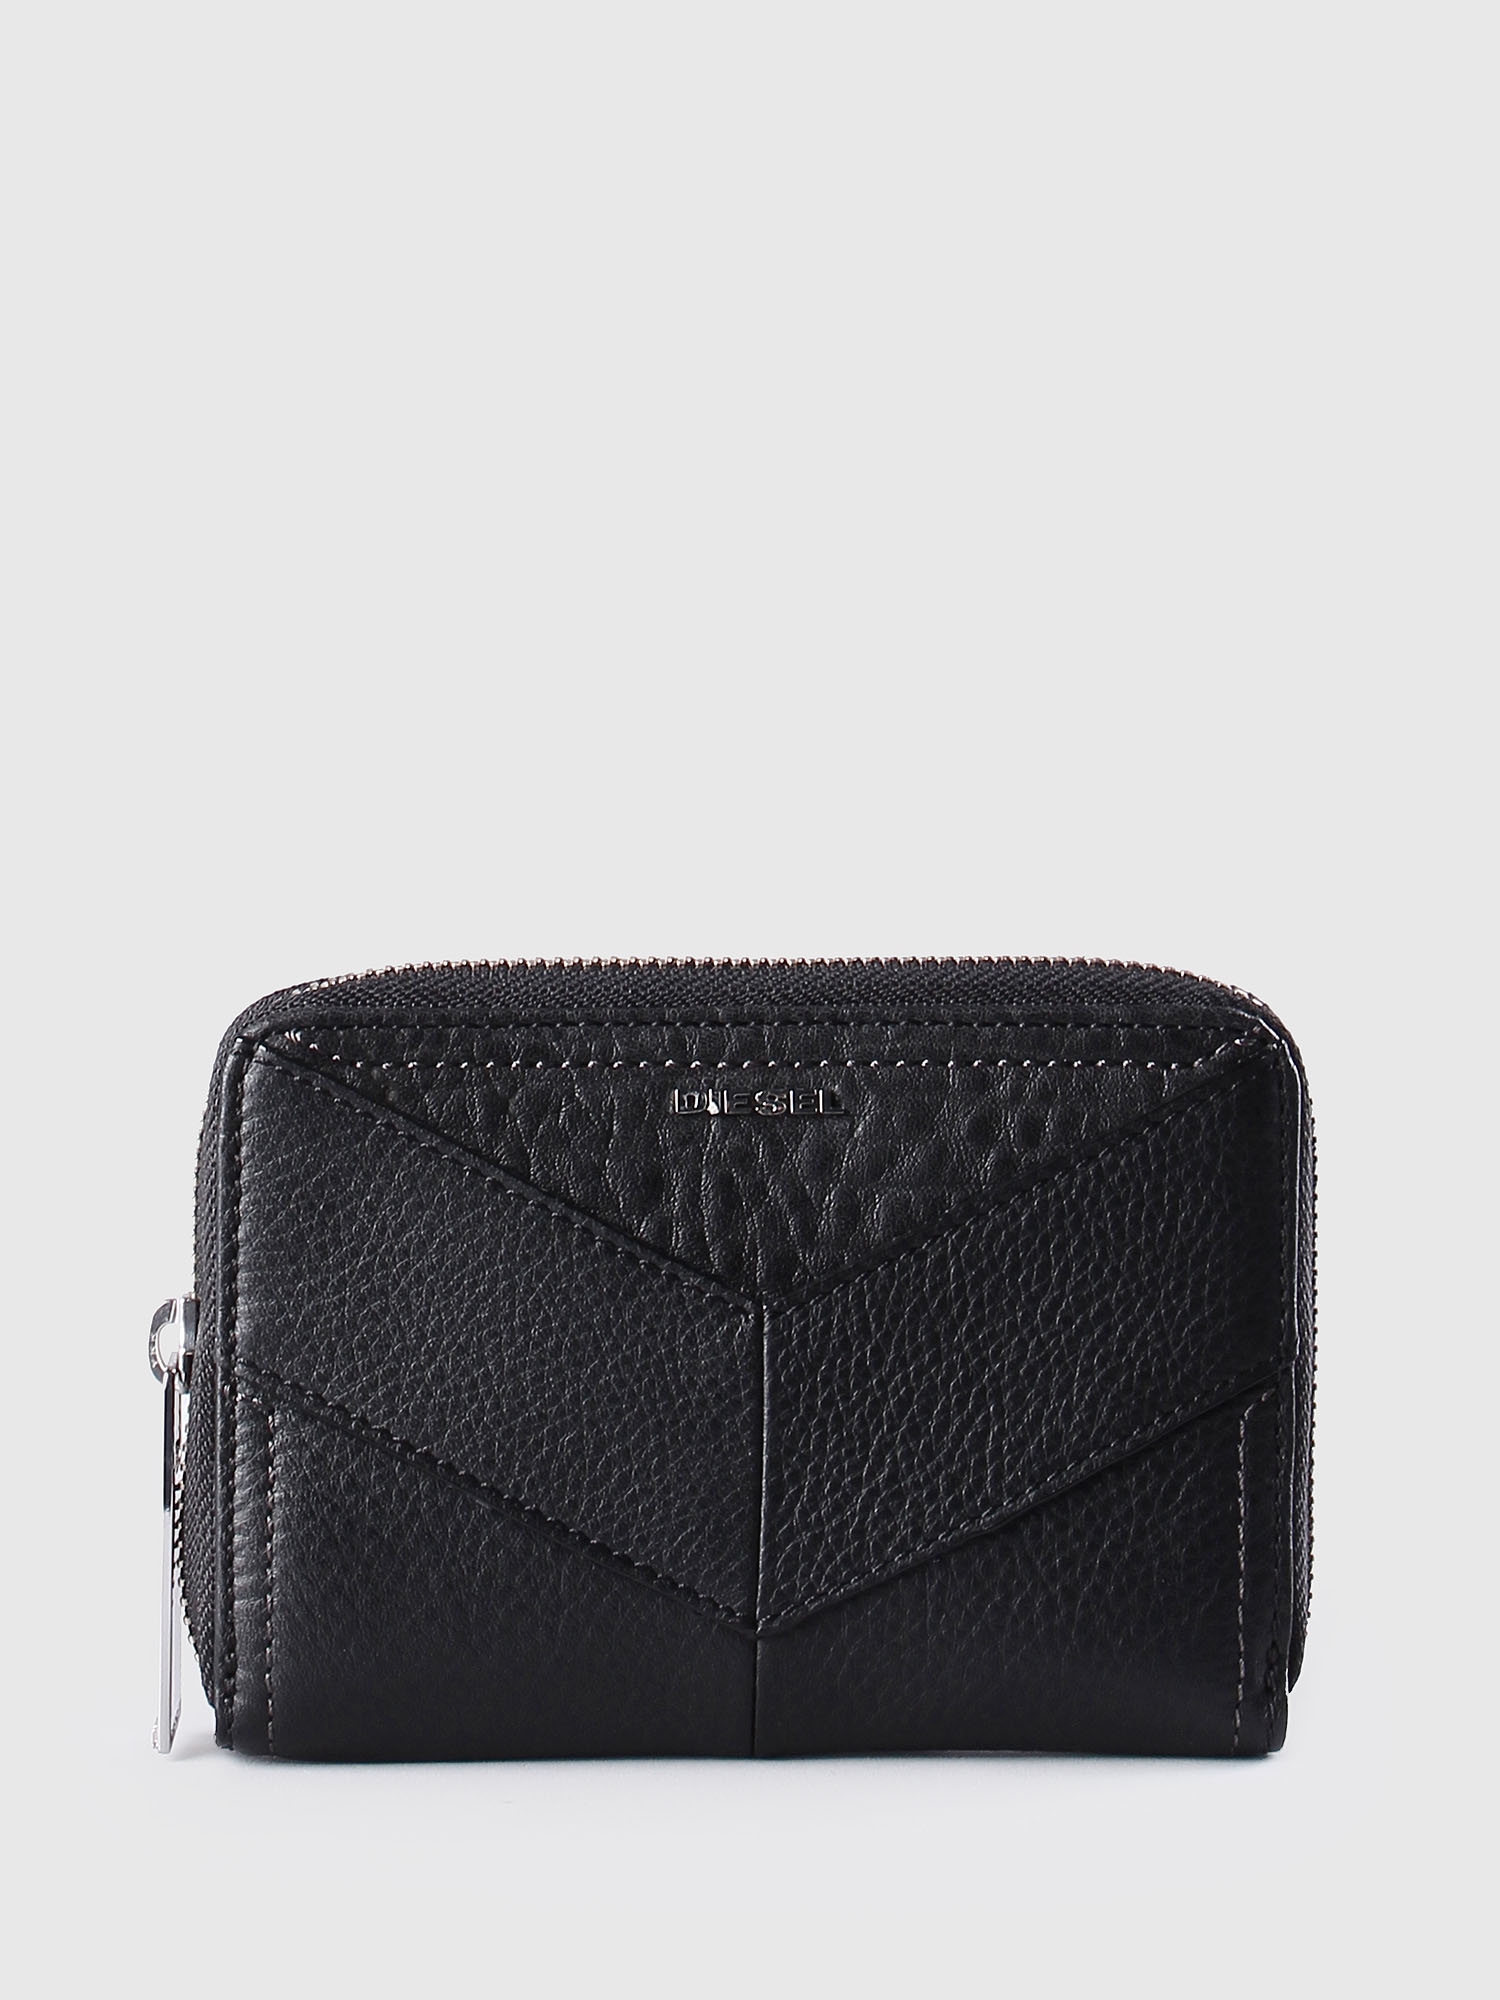 Diesel - JADDAA,  - Small Wallets - Image 1